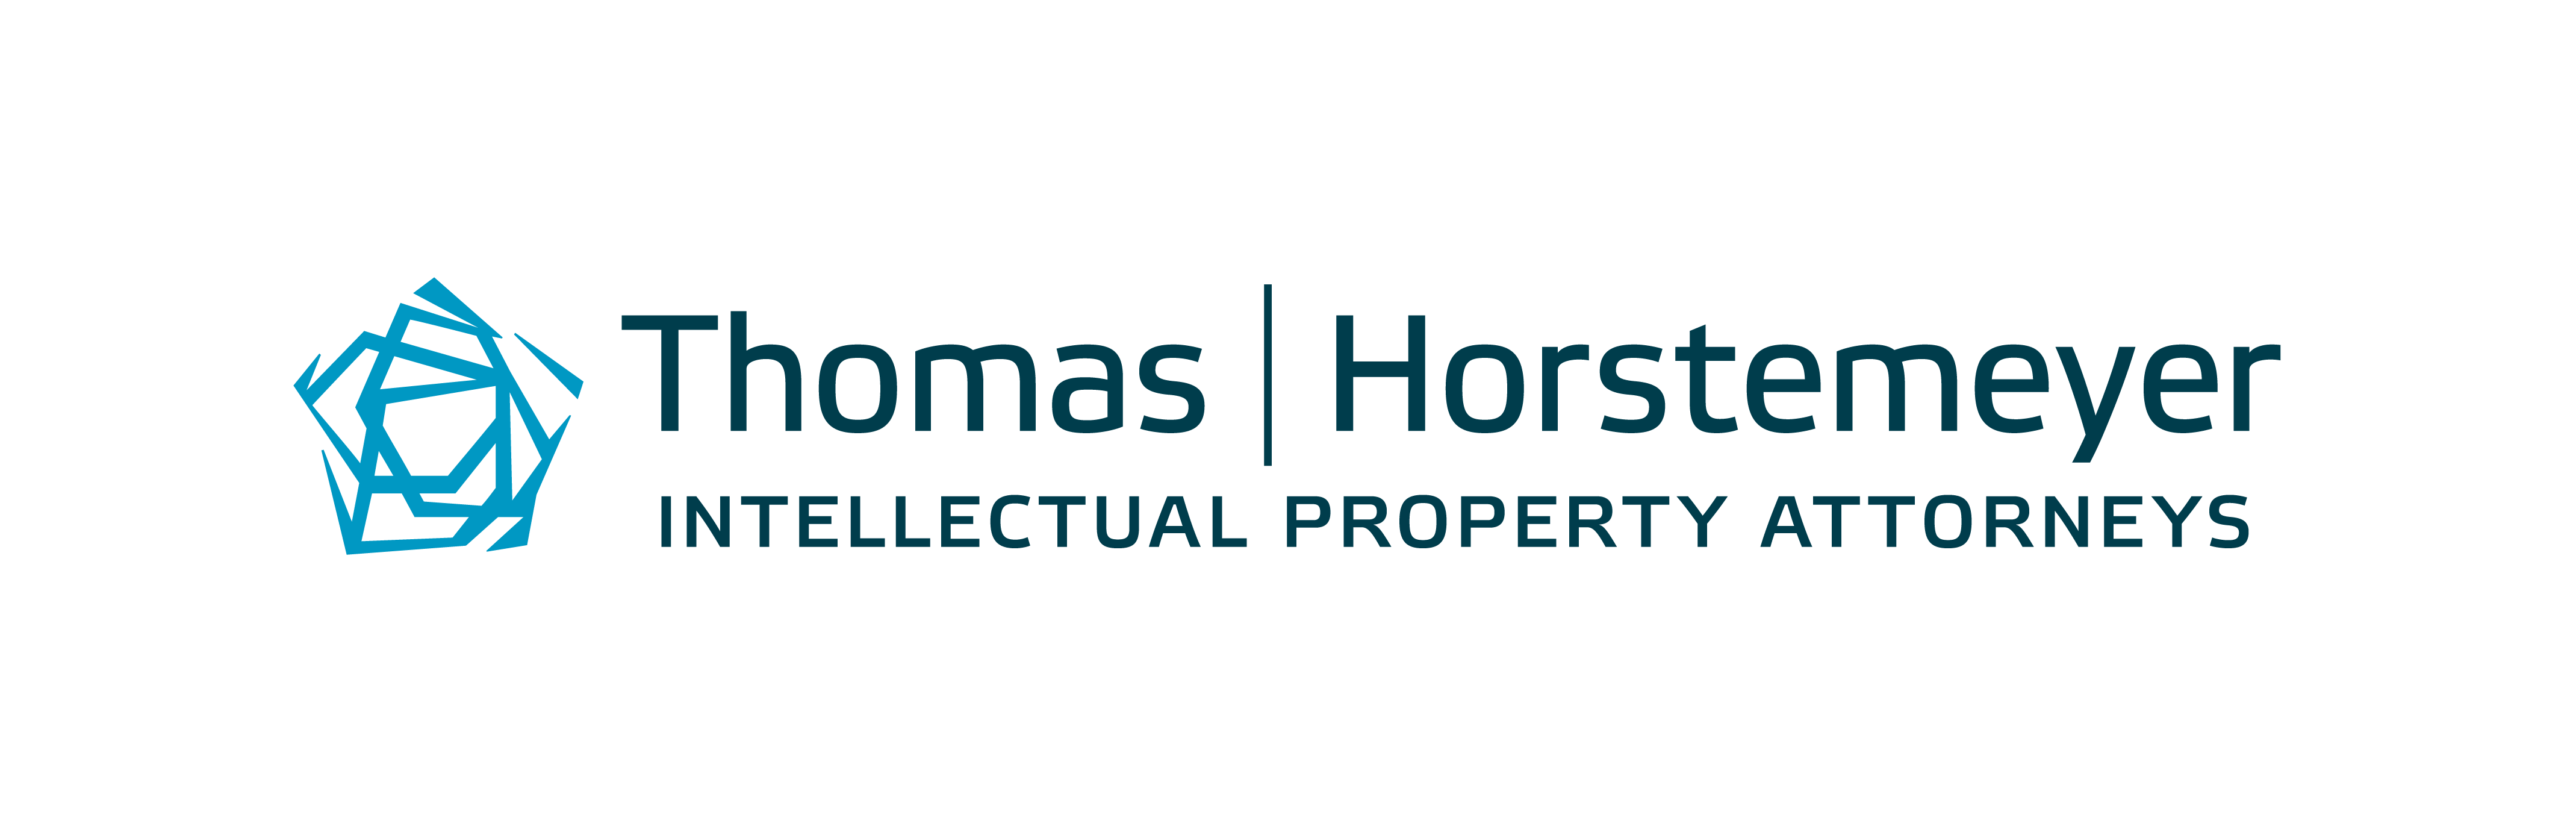 Thomas Horstemeyer LLP Company Logo